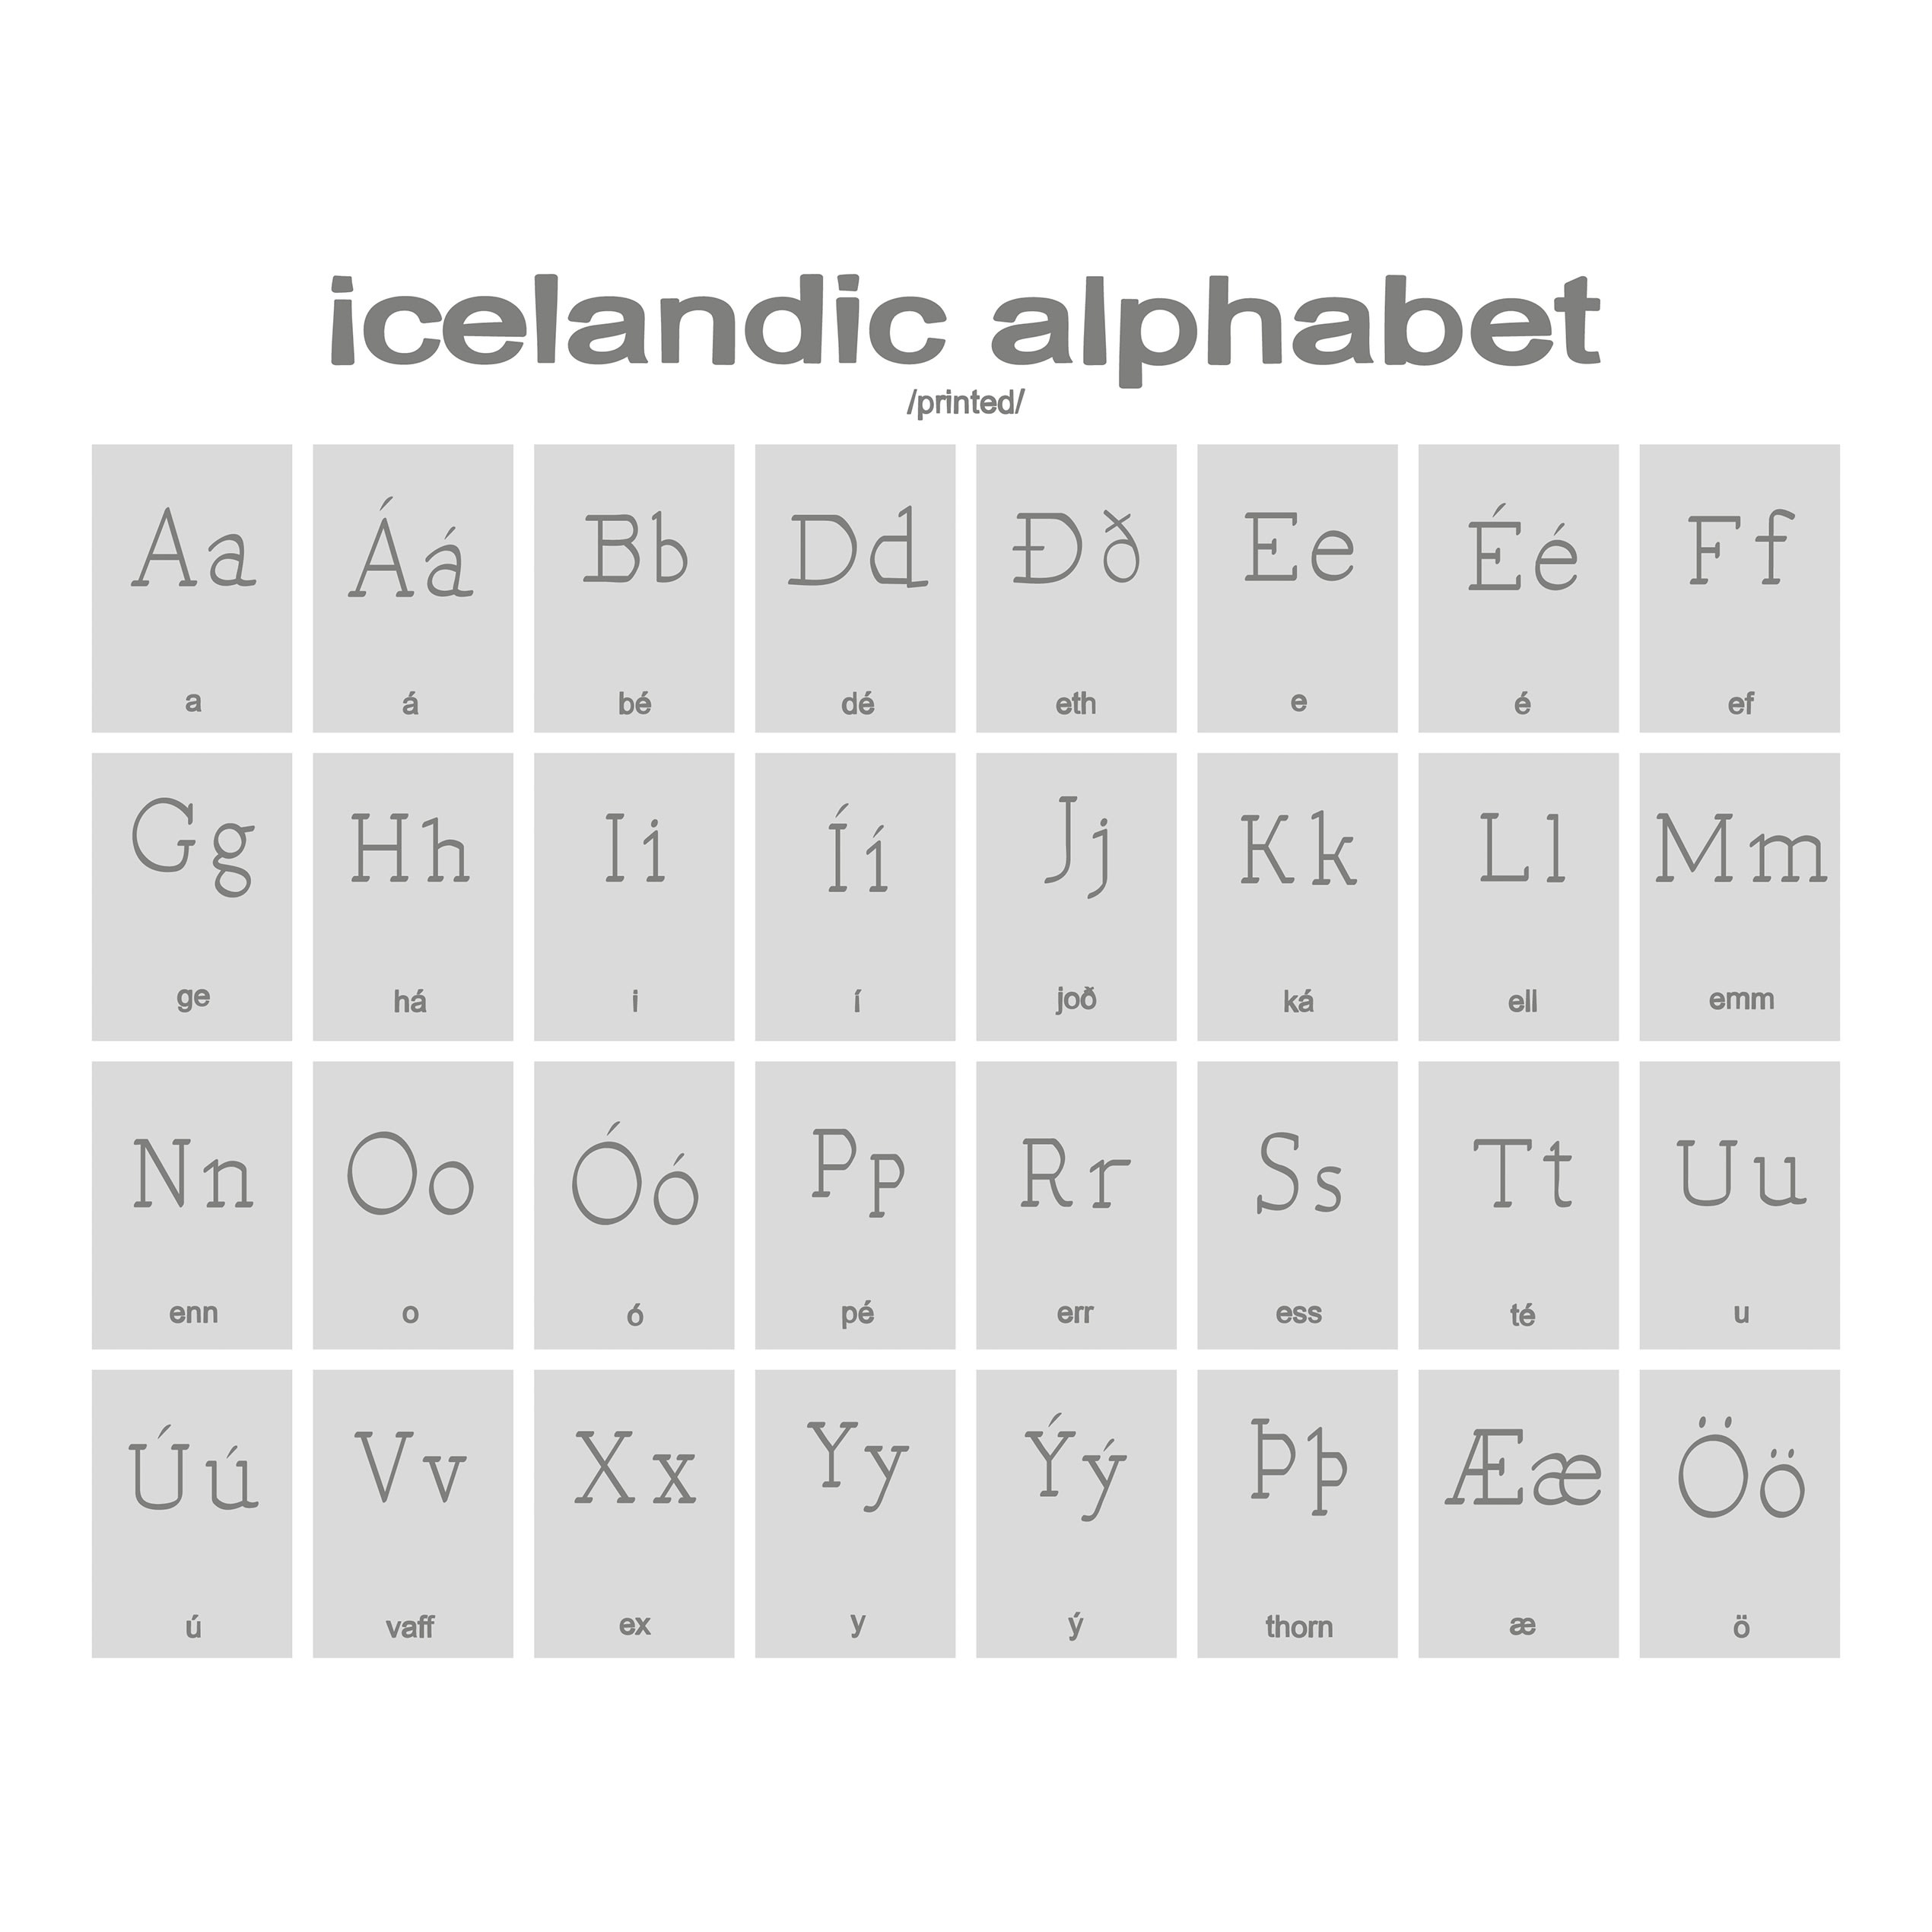 the Icelandic alphabet displayed on a grey and white graphic